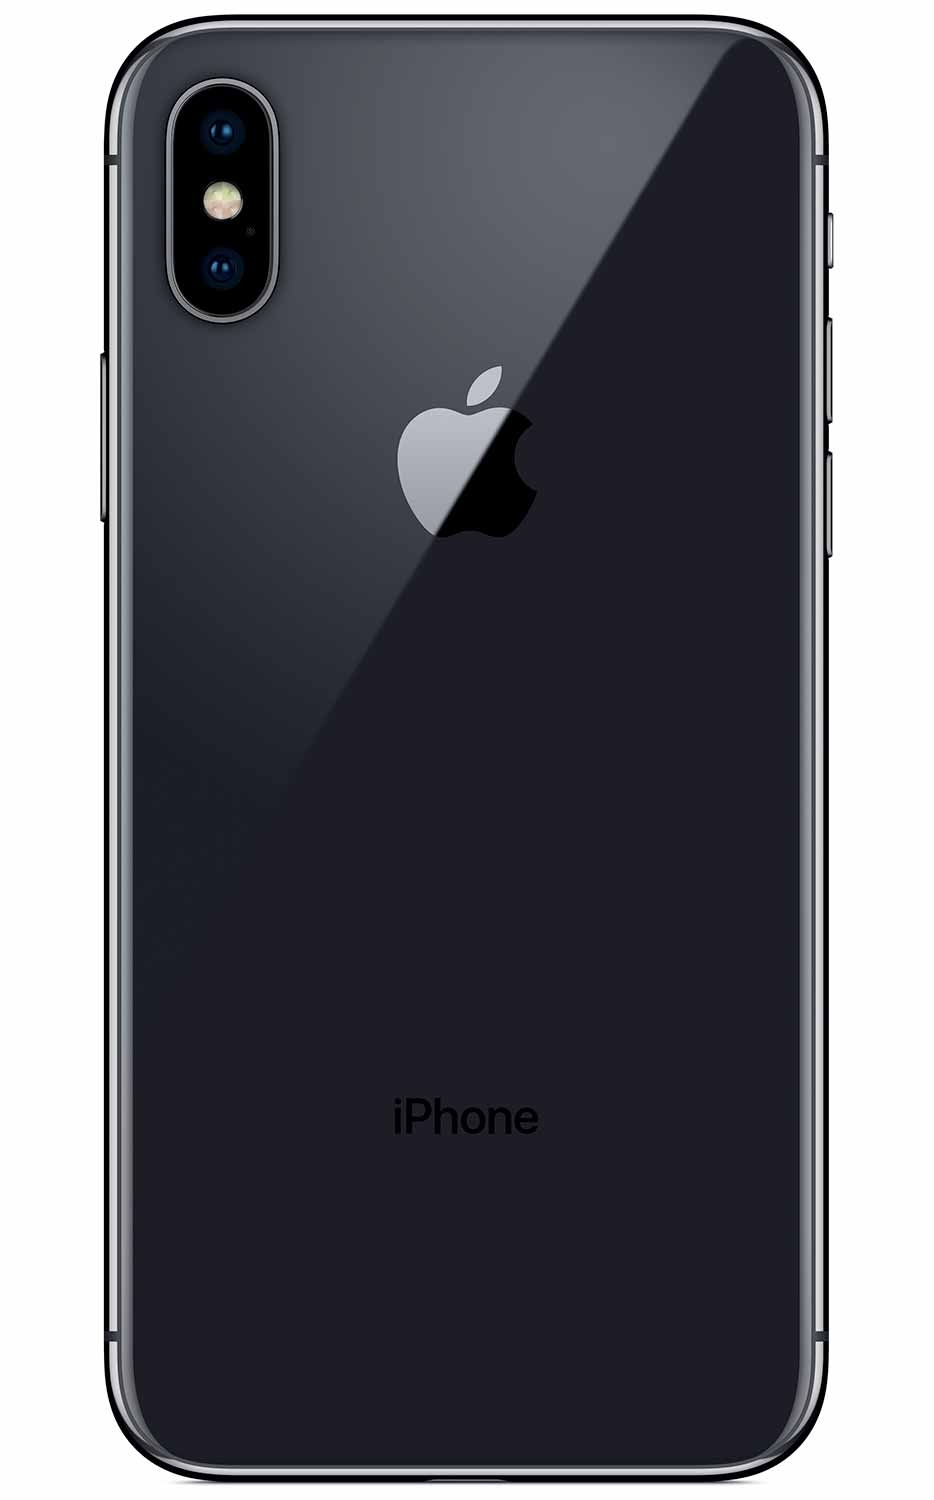 Apple iPhone X - 256GB Space Gray - 3